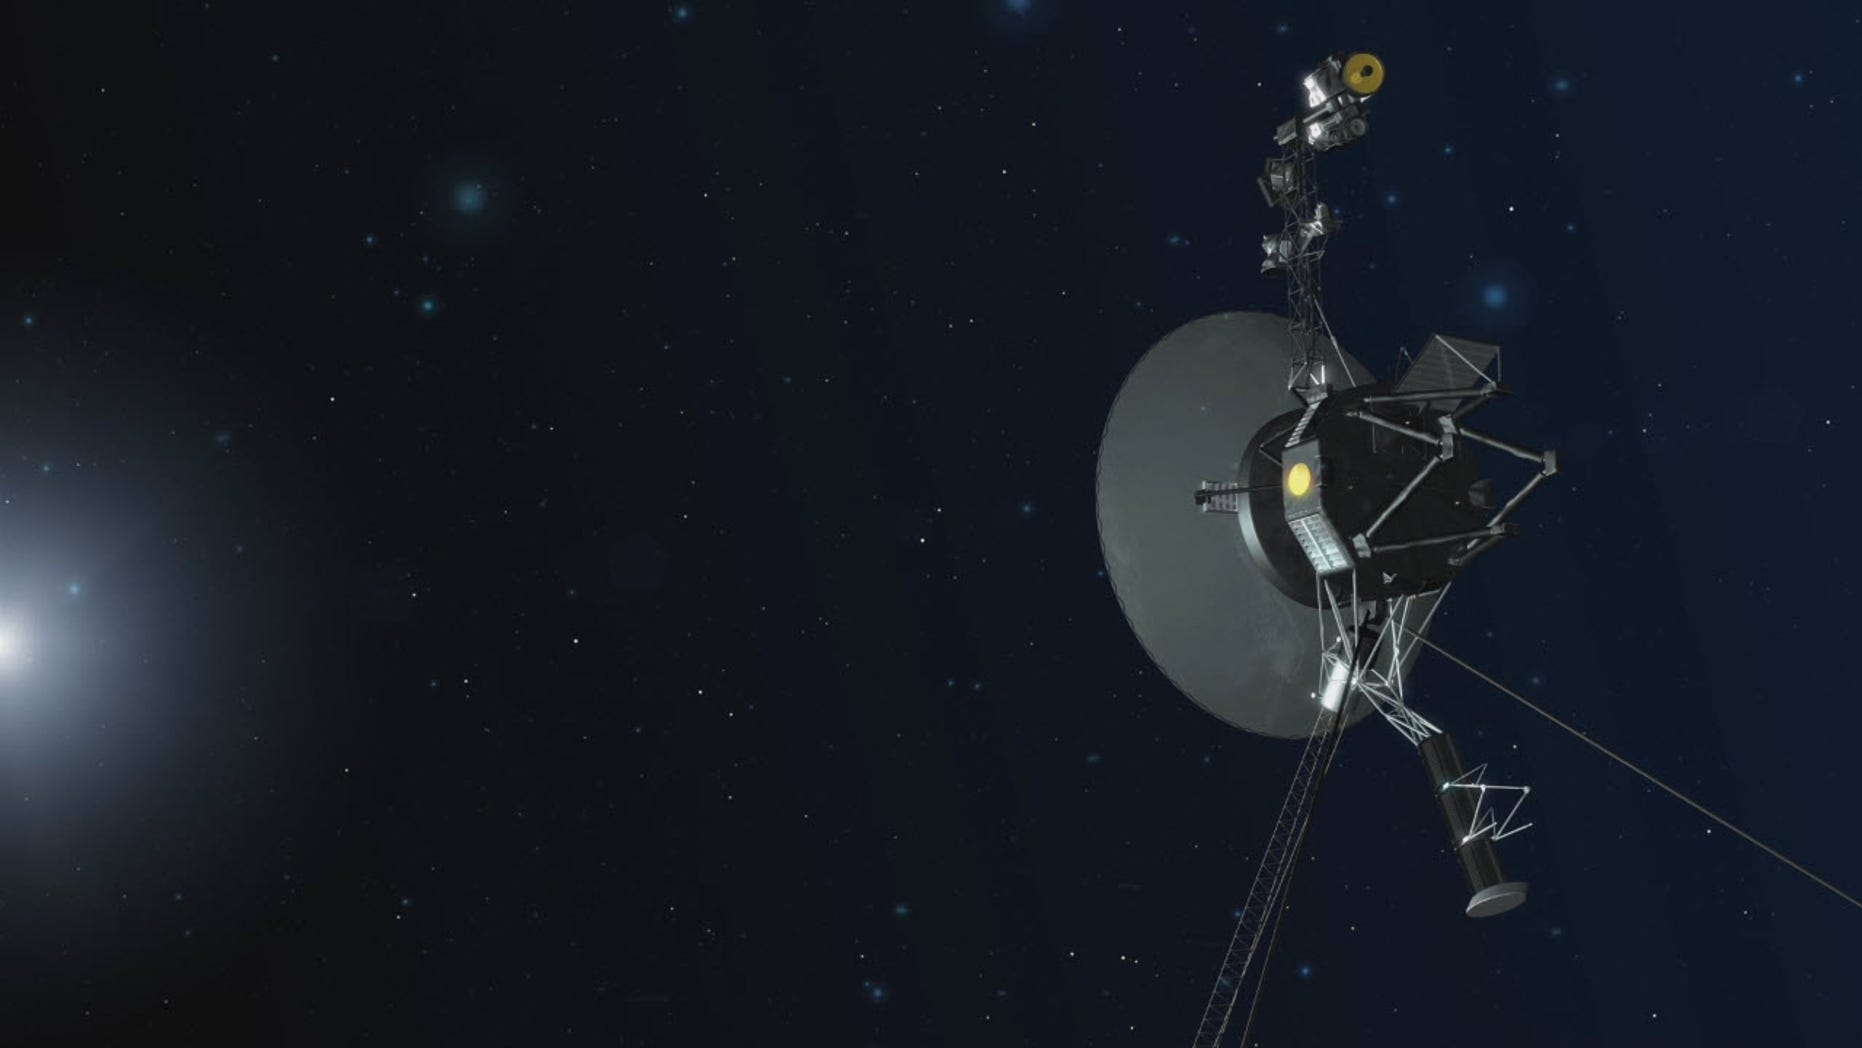 An artist's concept of one of the NASA's twin Voyager spacecraft in space. Voyager 1 and Voyager 2 are humanity's farthest and longest-lived spacecraft, launching 40 years ago in August and September of 1977.